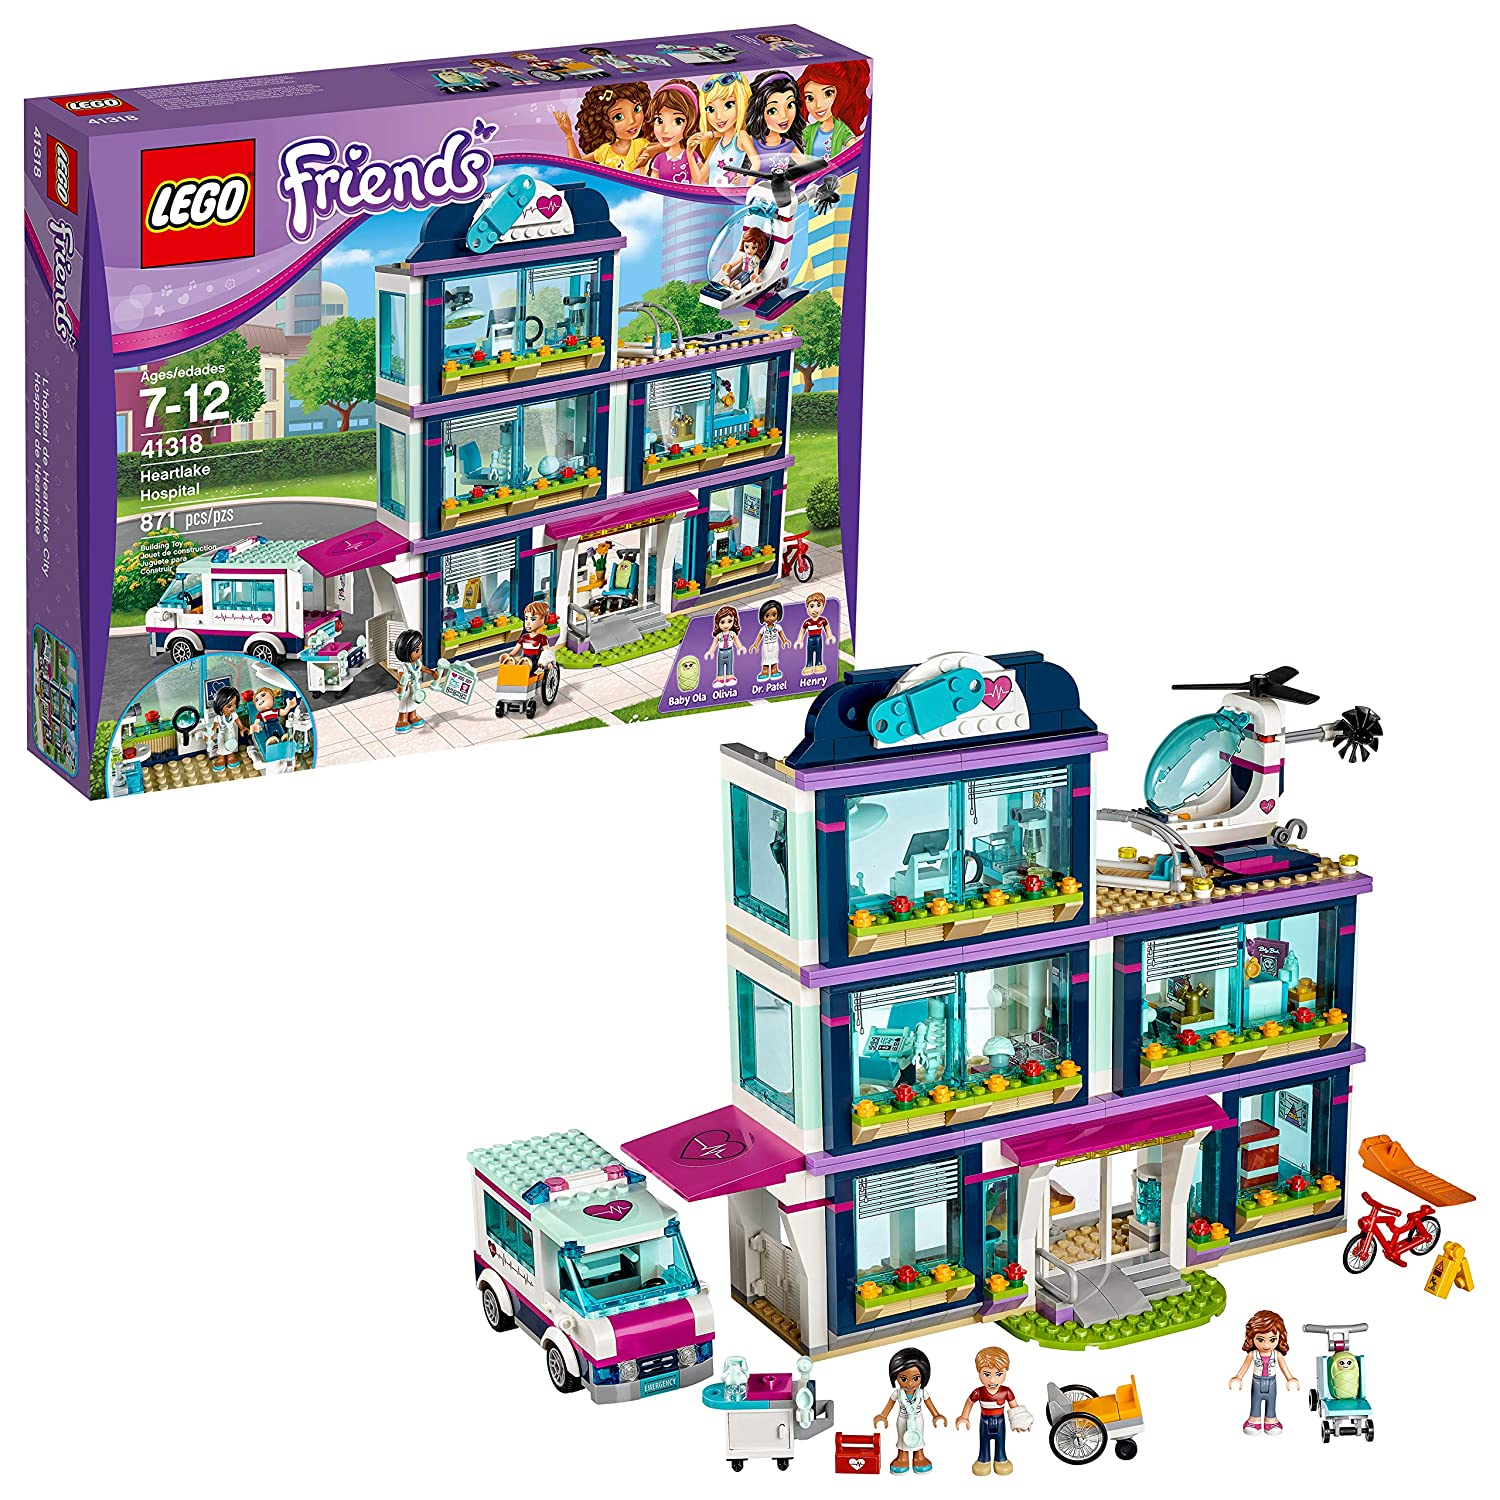 Buy Lego Friends Heartlake Hospital 41318 Building Kit 871 Piece